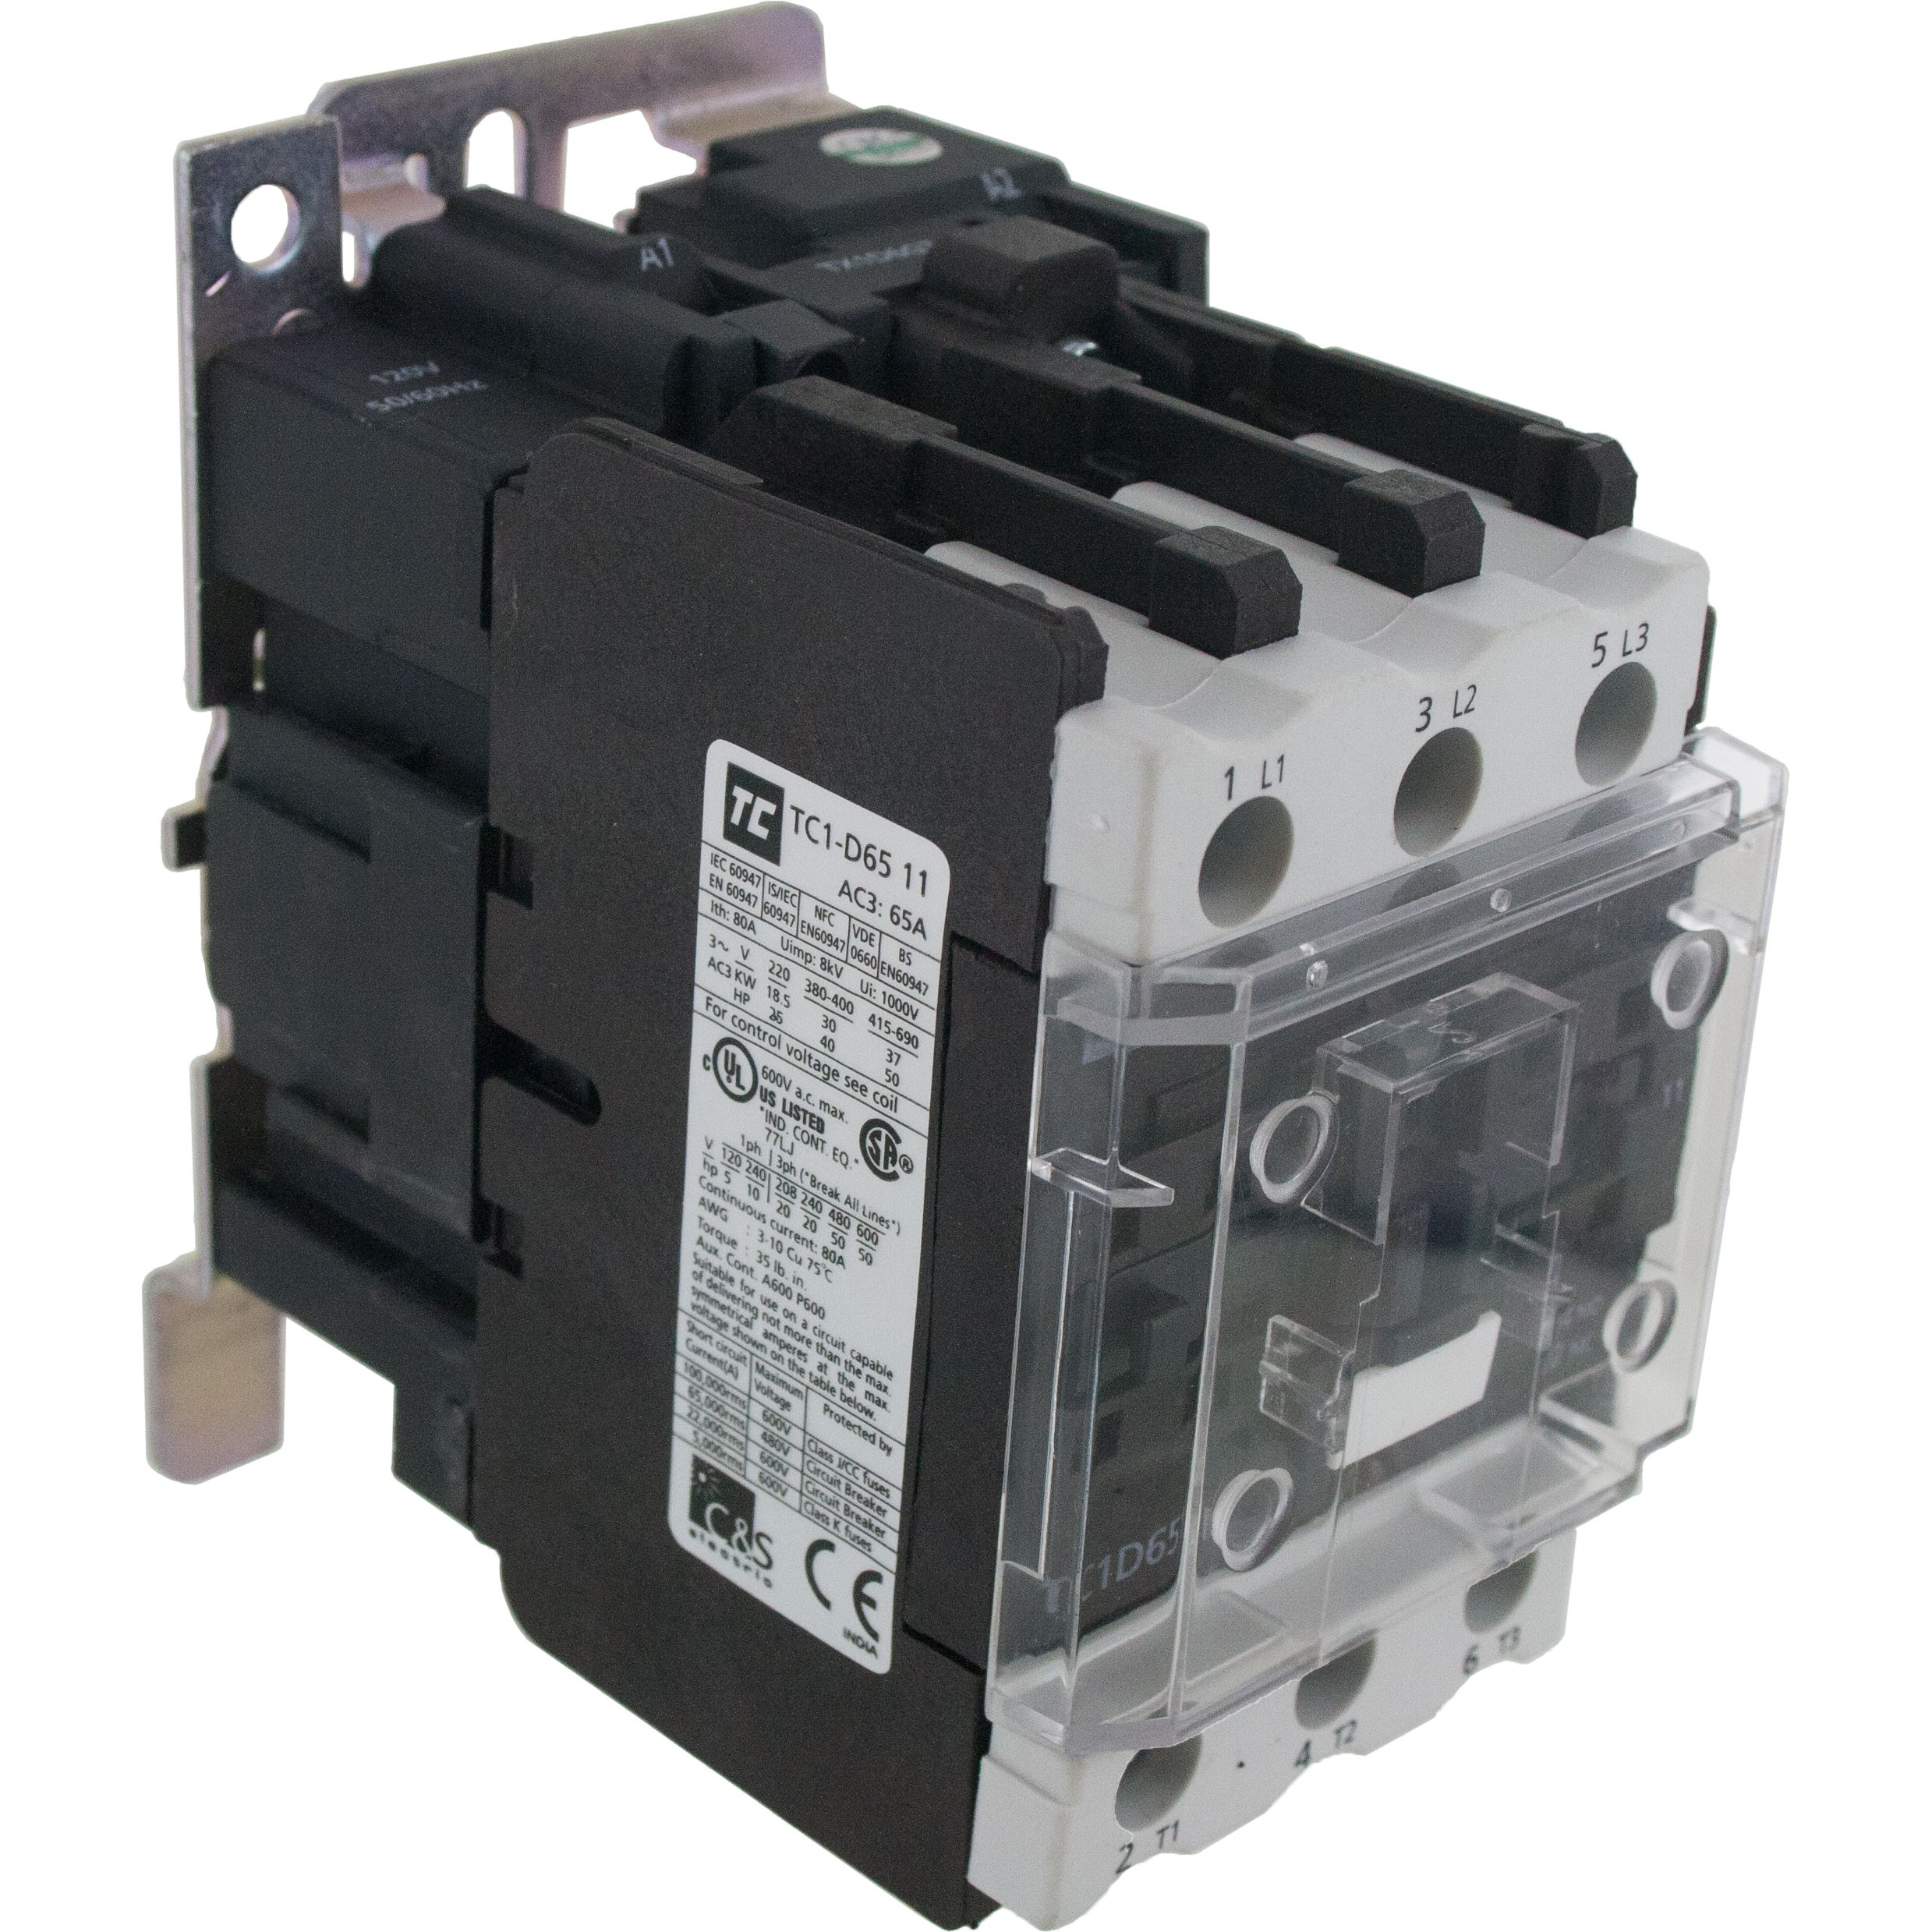 3 Pole Contactor 65 Amp 1 N/O - 1 N/C 208 Volt AC Coil Angle